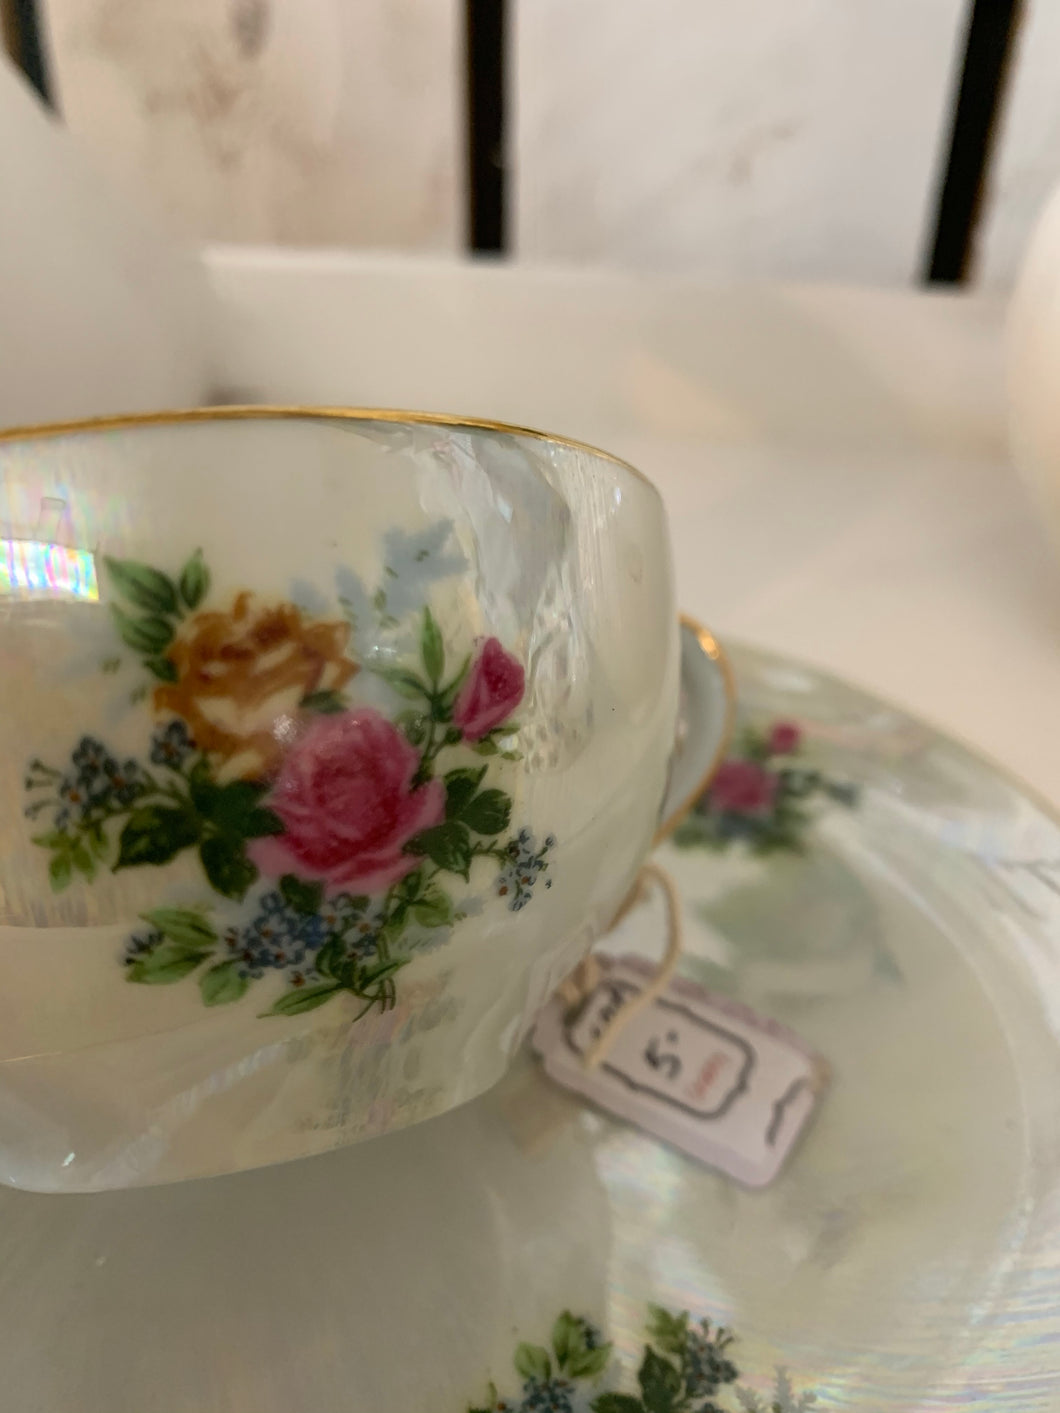 Rose Opalescent Tea Cup & Saucer